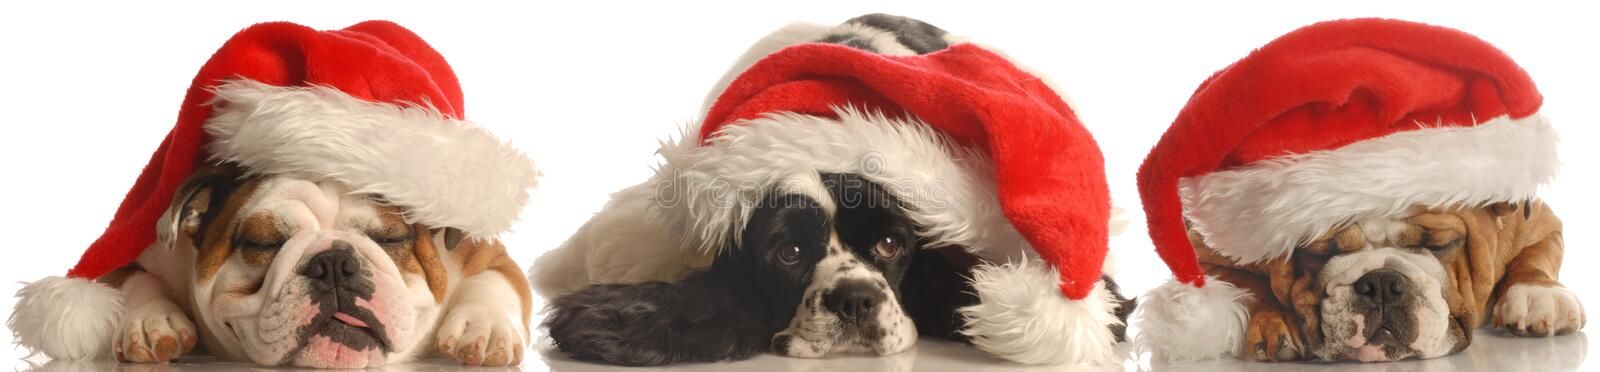 Three dogs with santa hats royalty free stock images